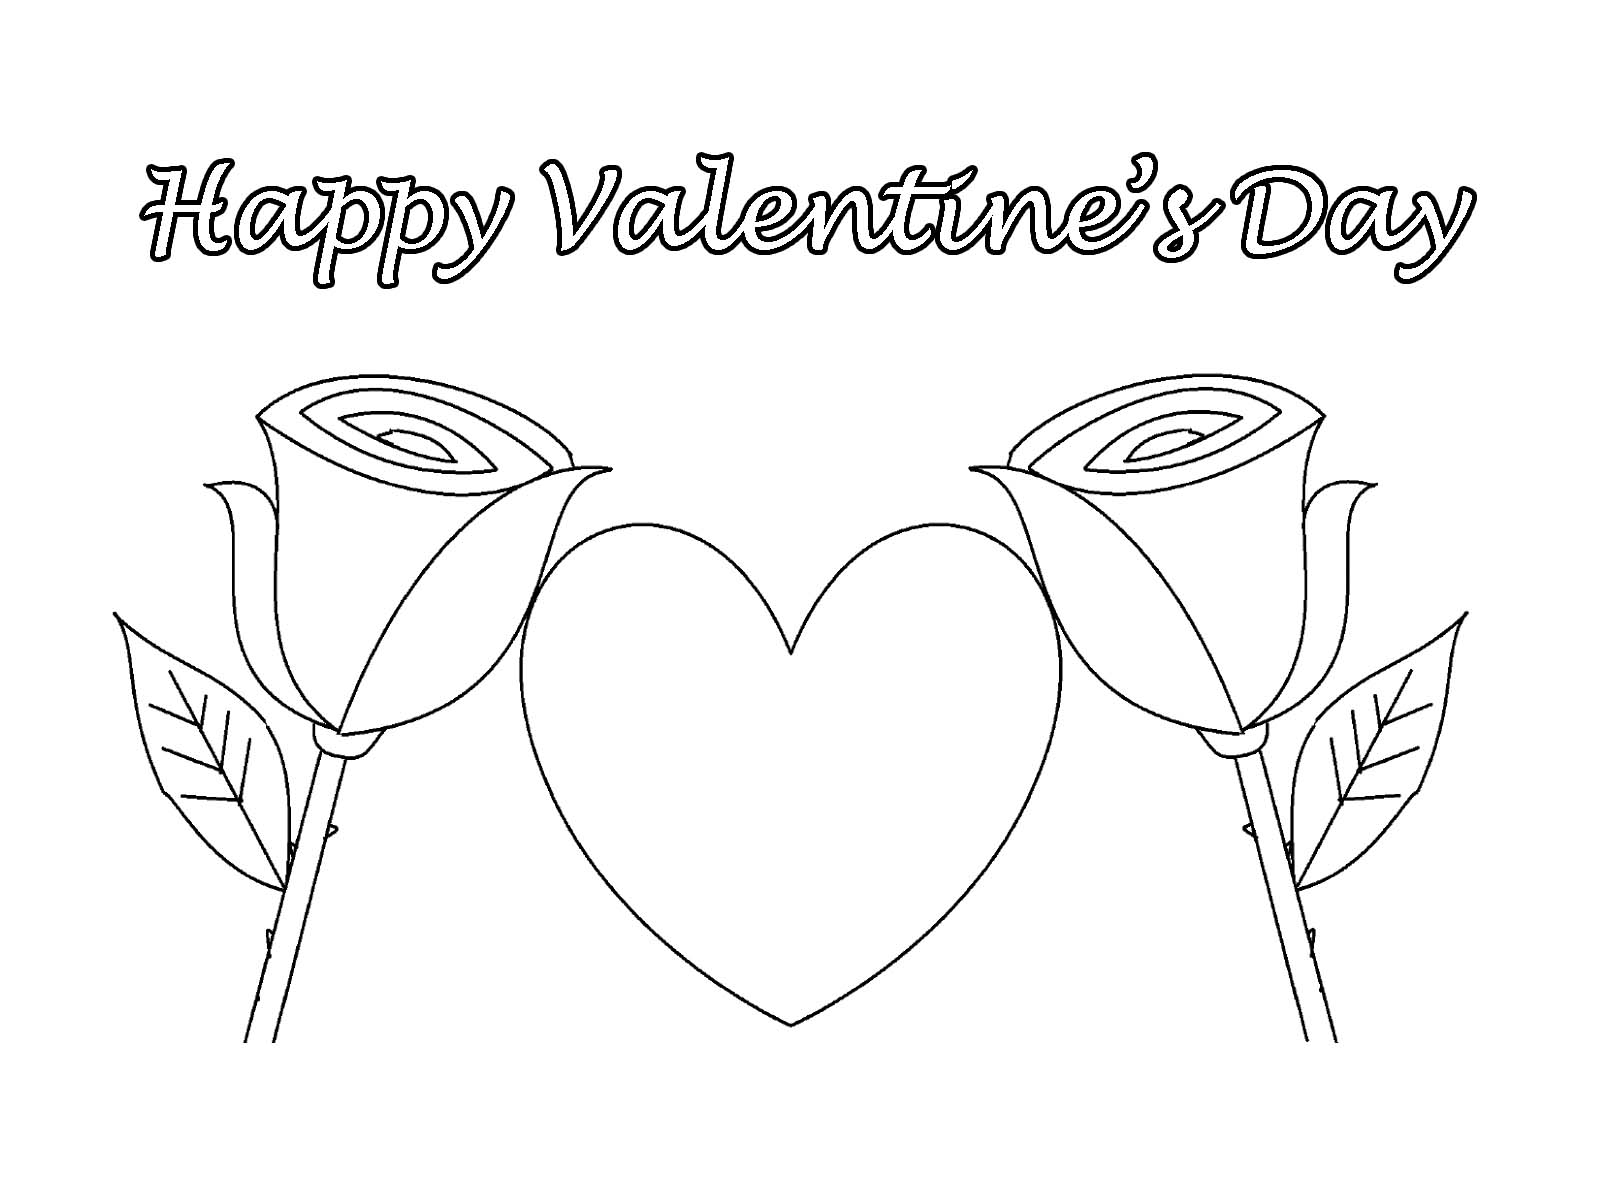 Happy Valentines Day Flowers Coloring Page